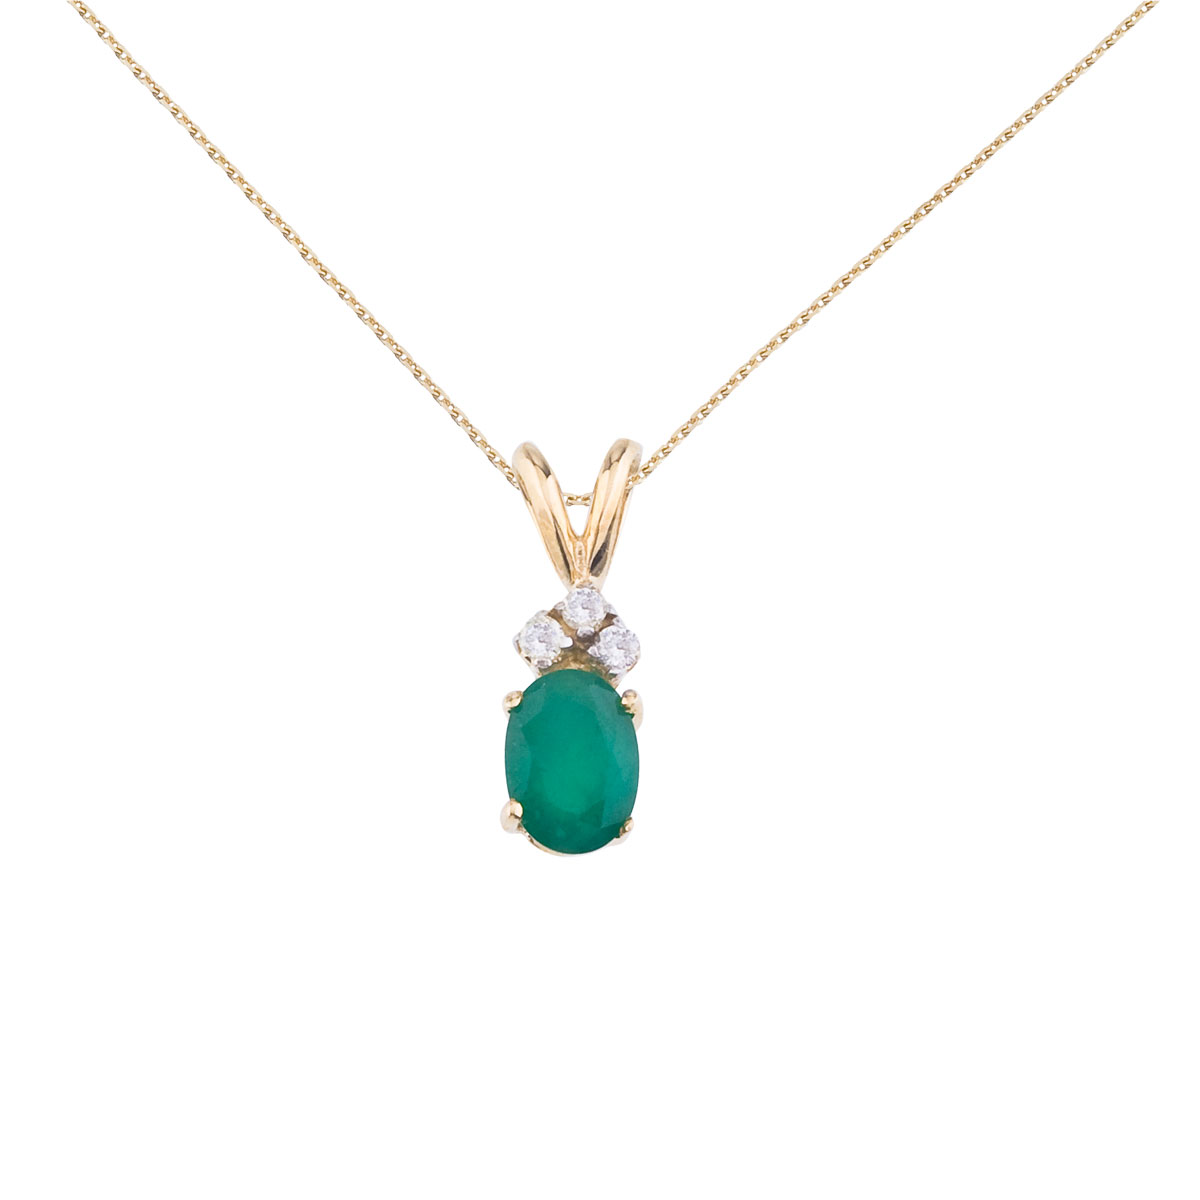 7x5 mm oval natural emerald pendant topped with 3 bright diamonds set in 14k yellow gold.